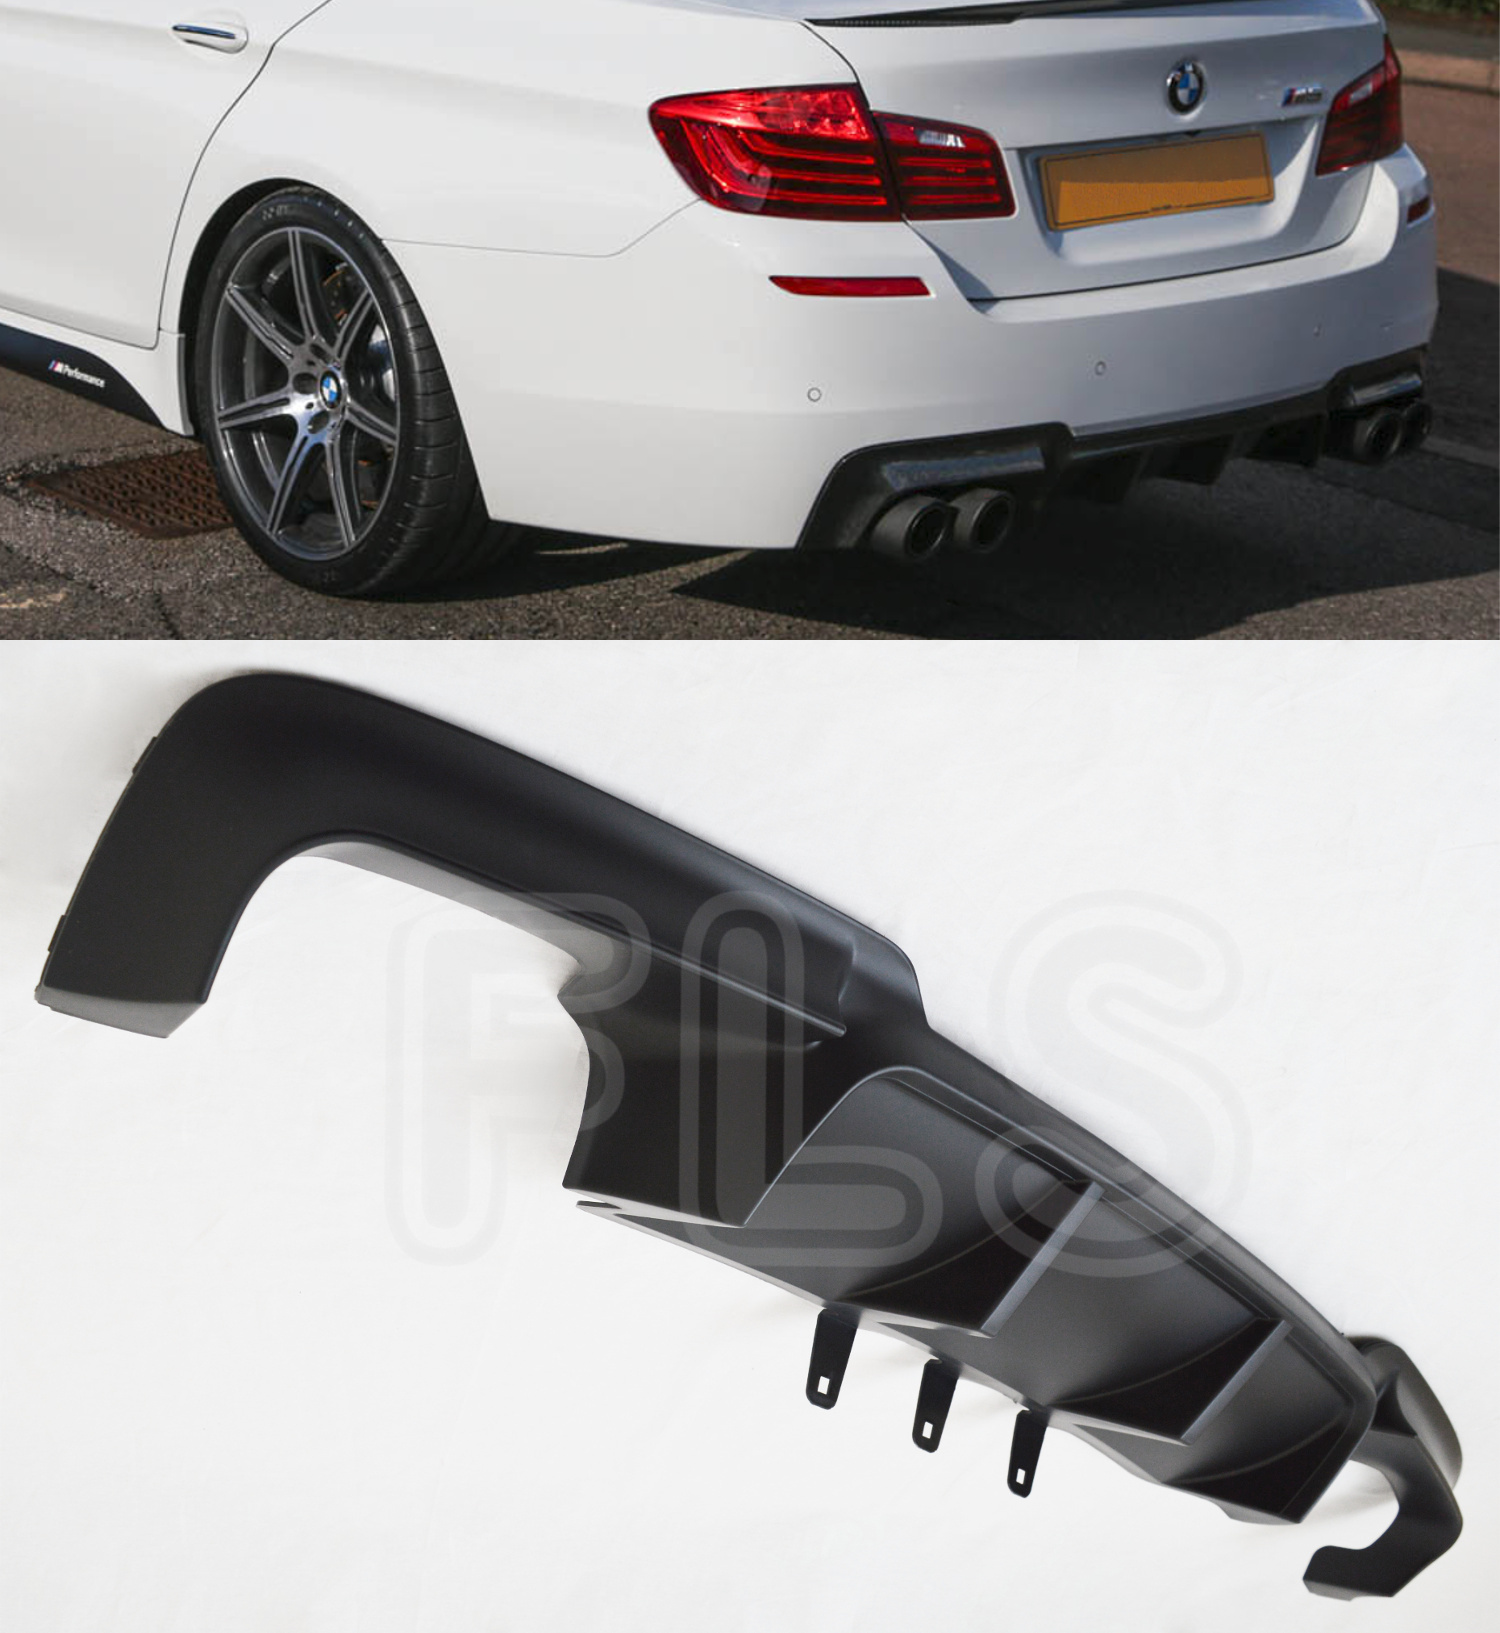 Bmw F10 Rear Diffuser Install - Wiring Diagram For Light Switch •